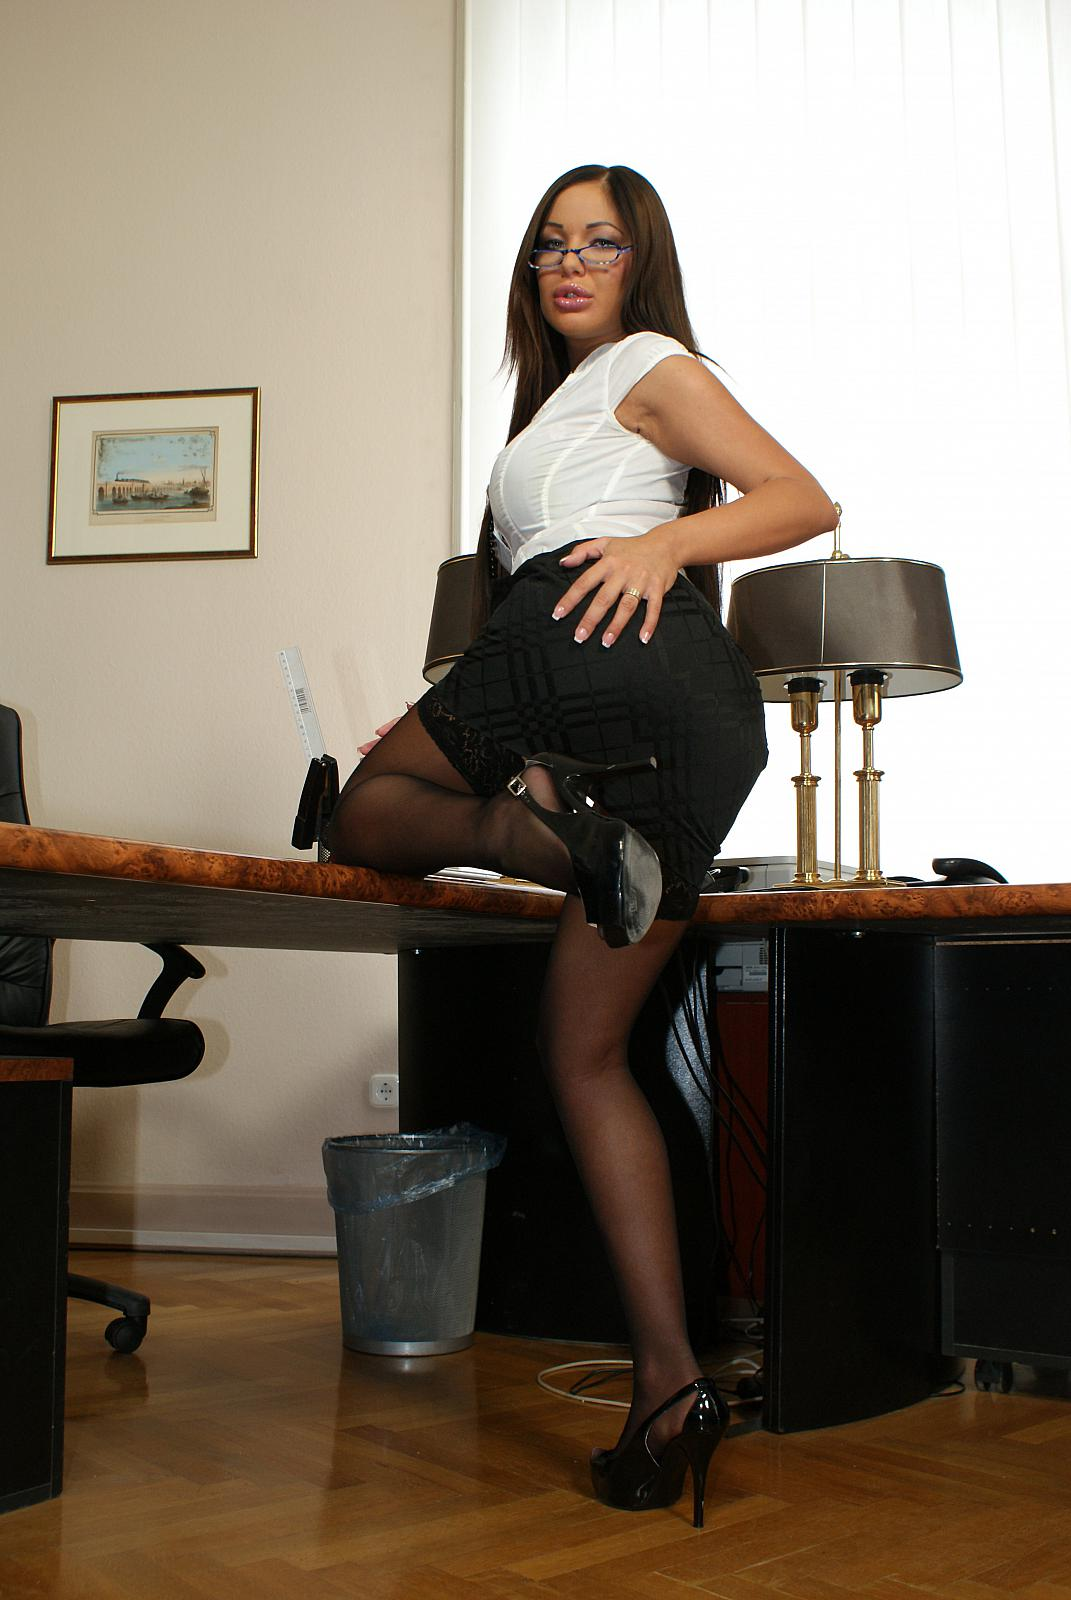 Paradise exists gallery mature secretary That ass